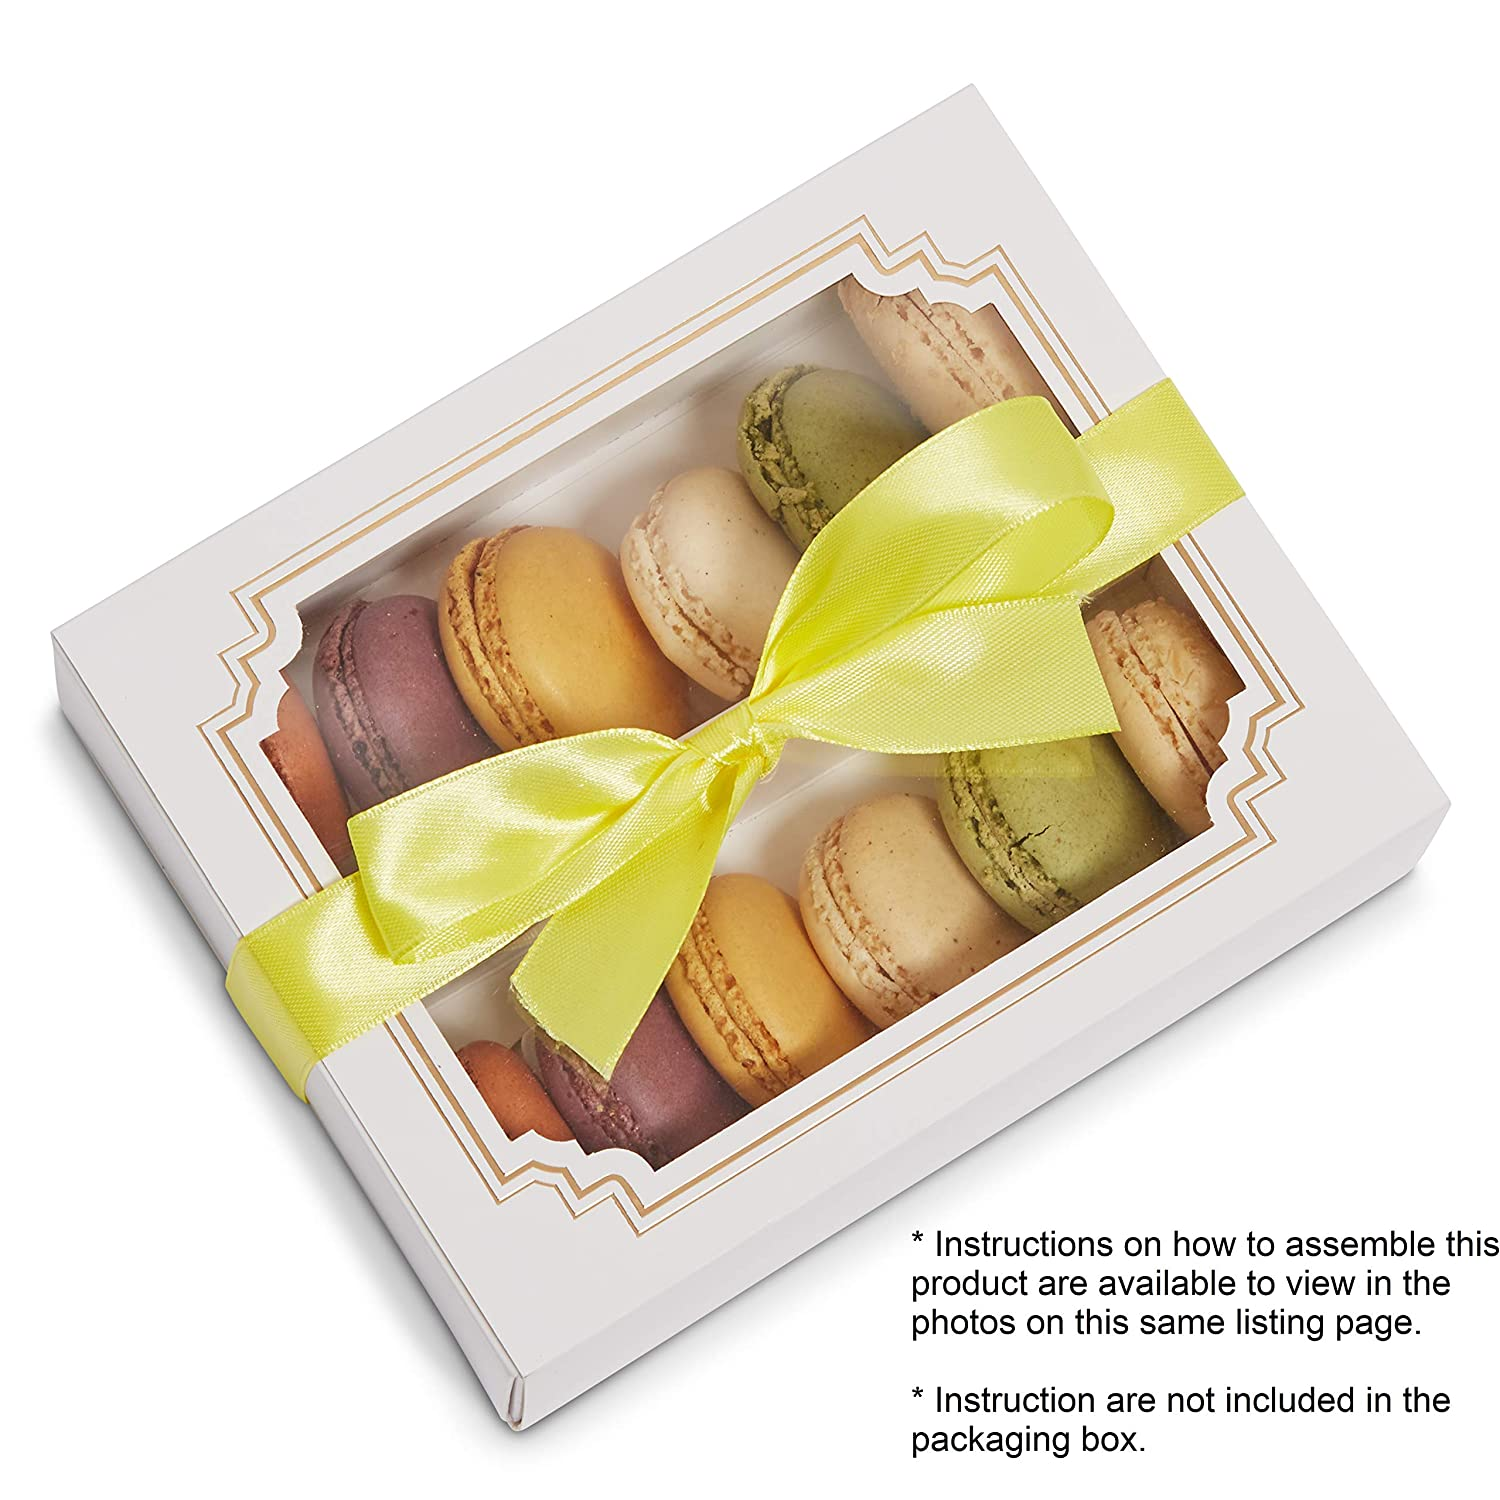 Sturdy Quality Pastry Beautiful Packaging Cake Bakery Box KAPRIZARE Cookie Window Boxes Cookie Pie Case Ribbon Included Ensure Freshness White /& Gold 20 Pack